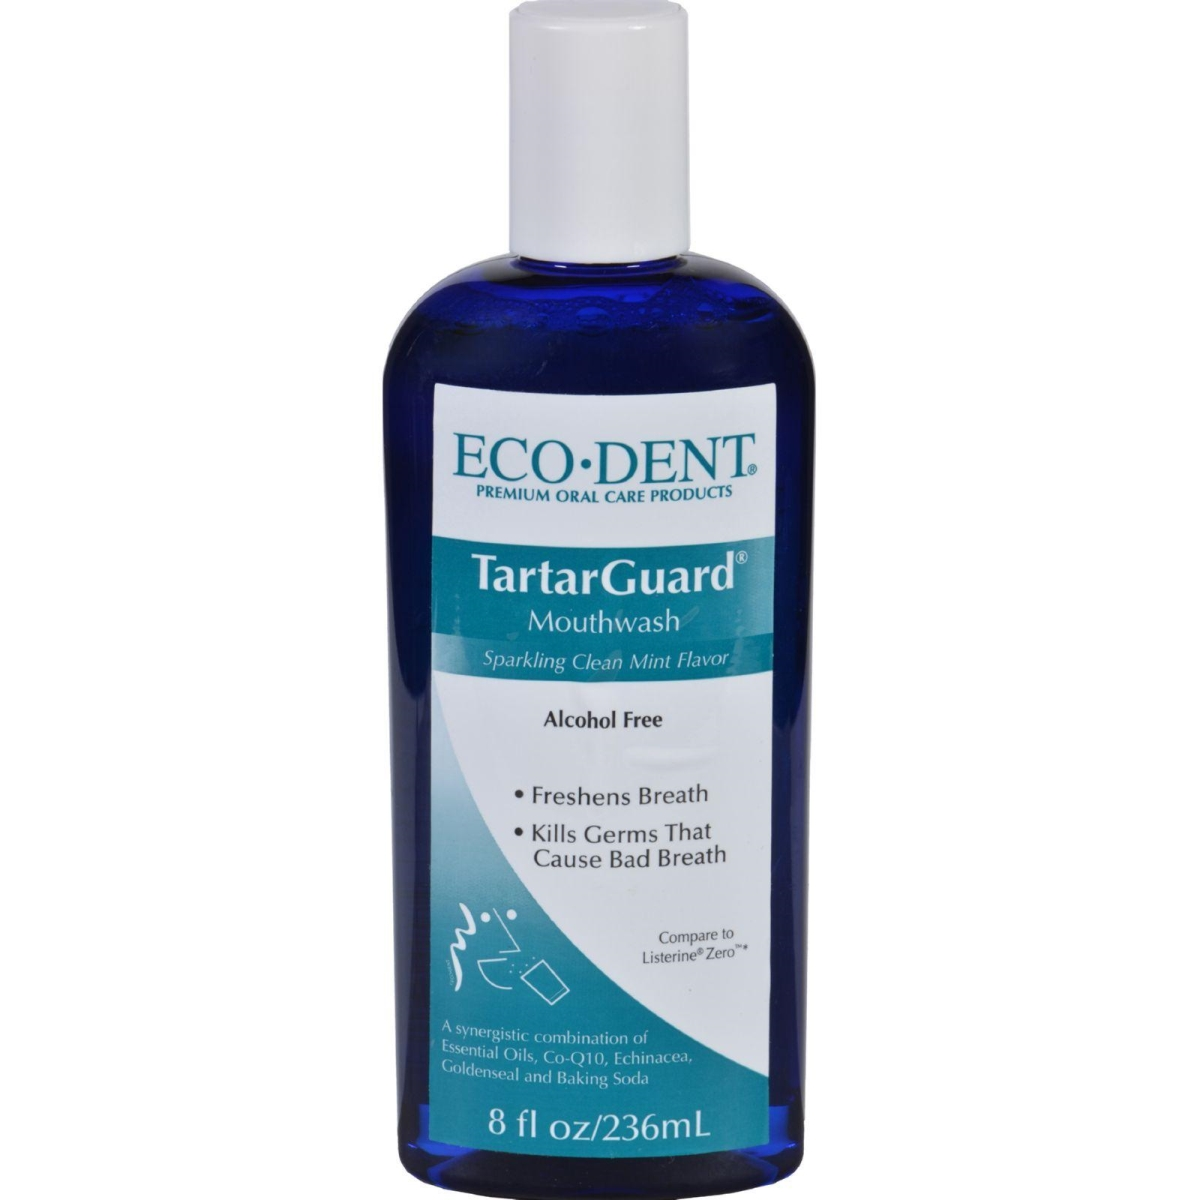 Eco-dent HG1685122 8 oz Premium Oral Care Mouthwash Tartarguard